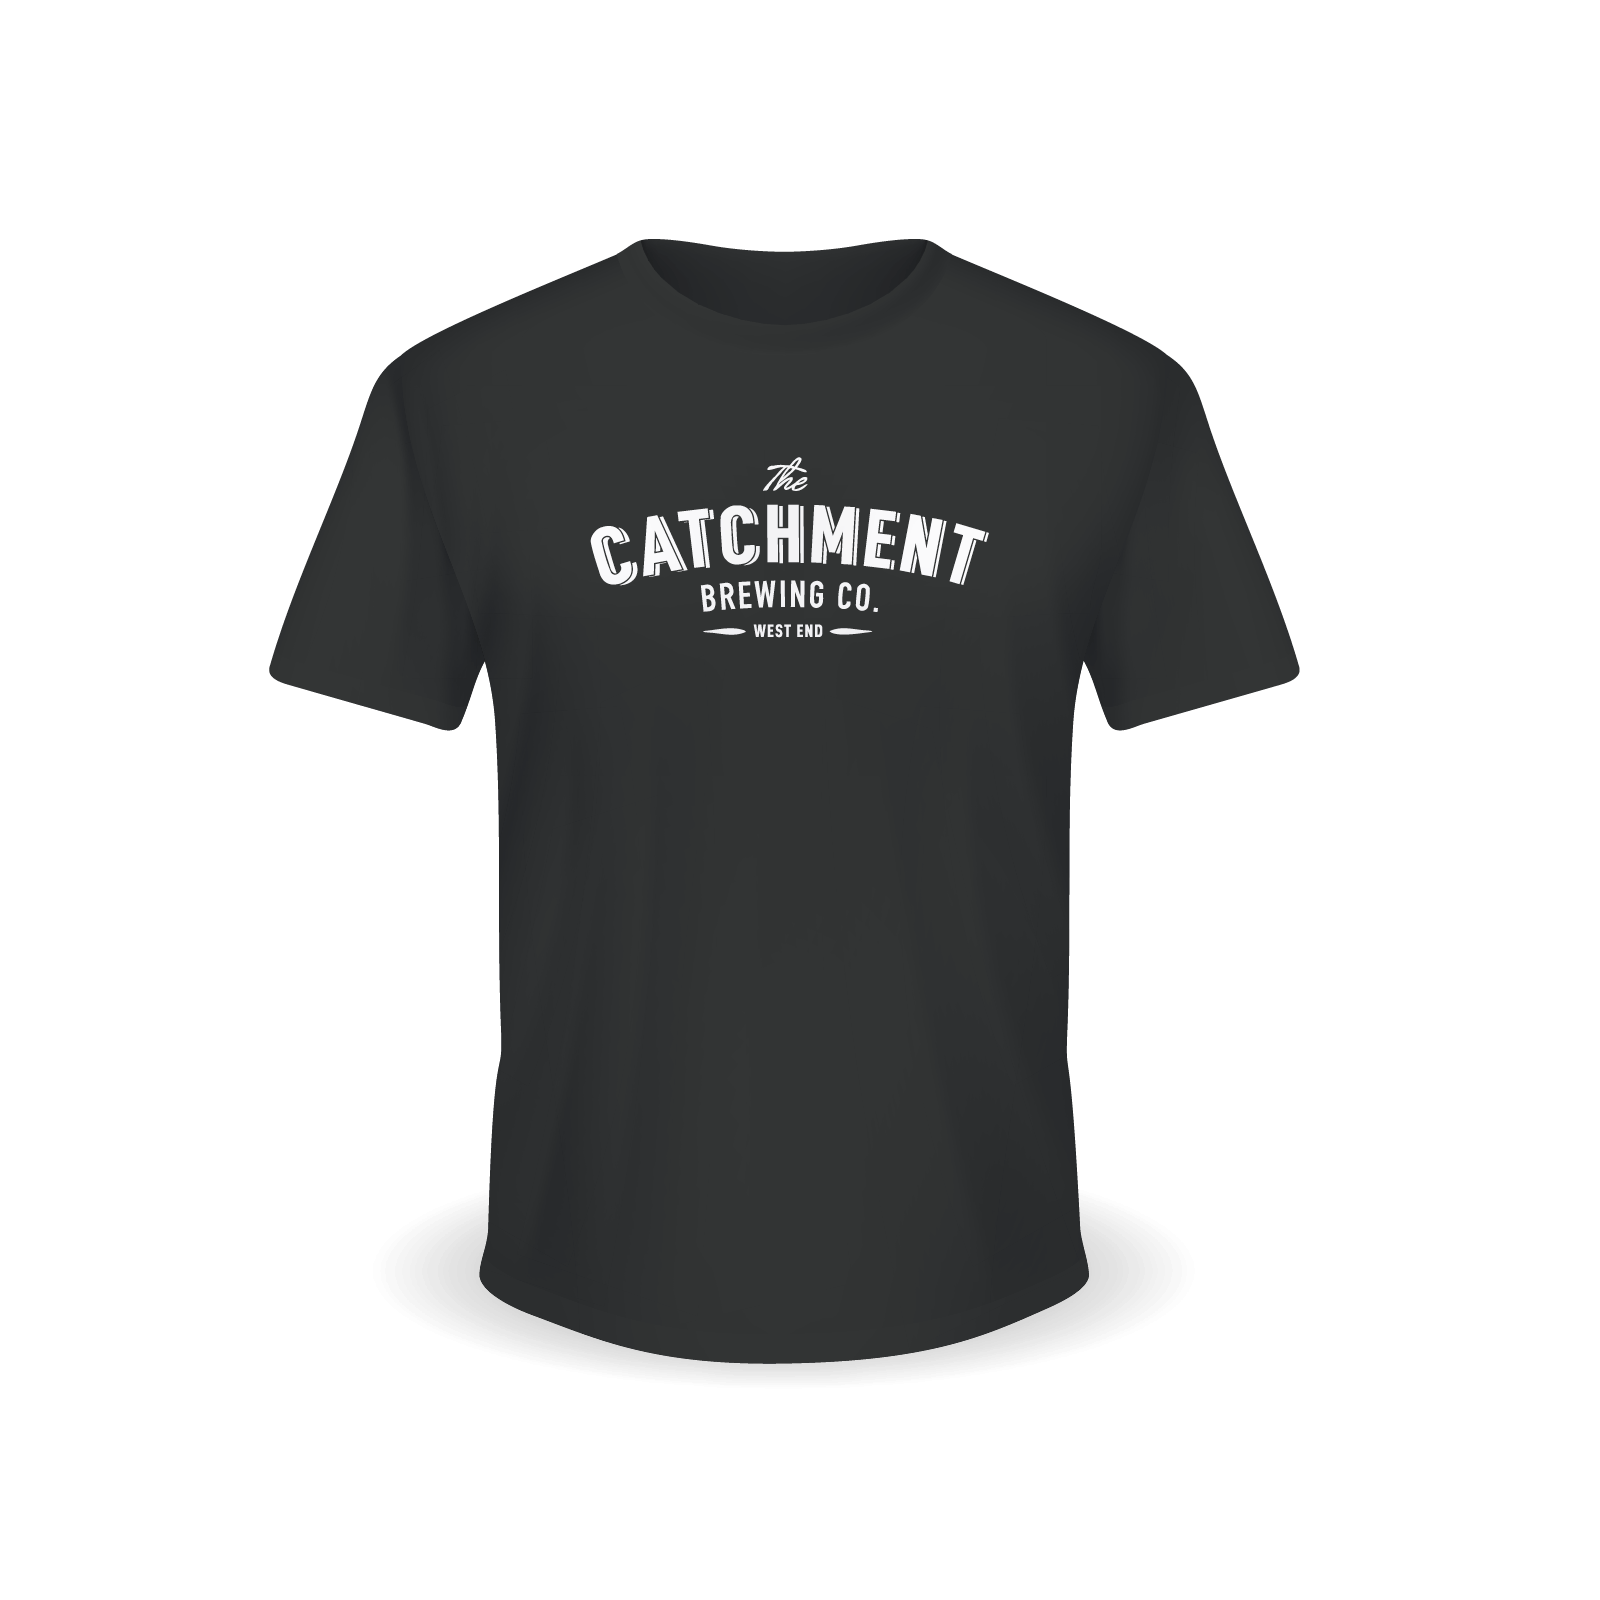 Catchment T-Shirt